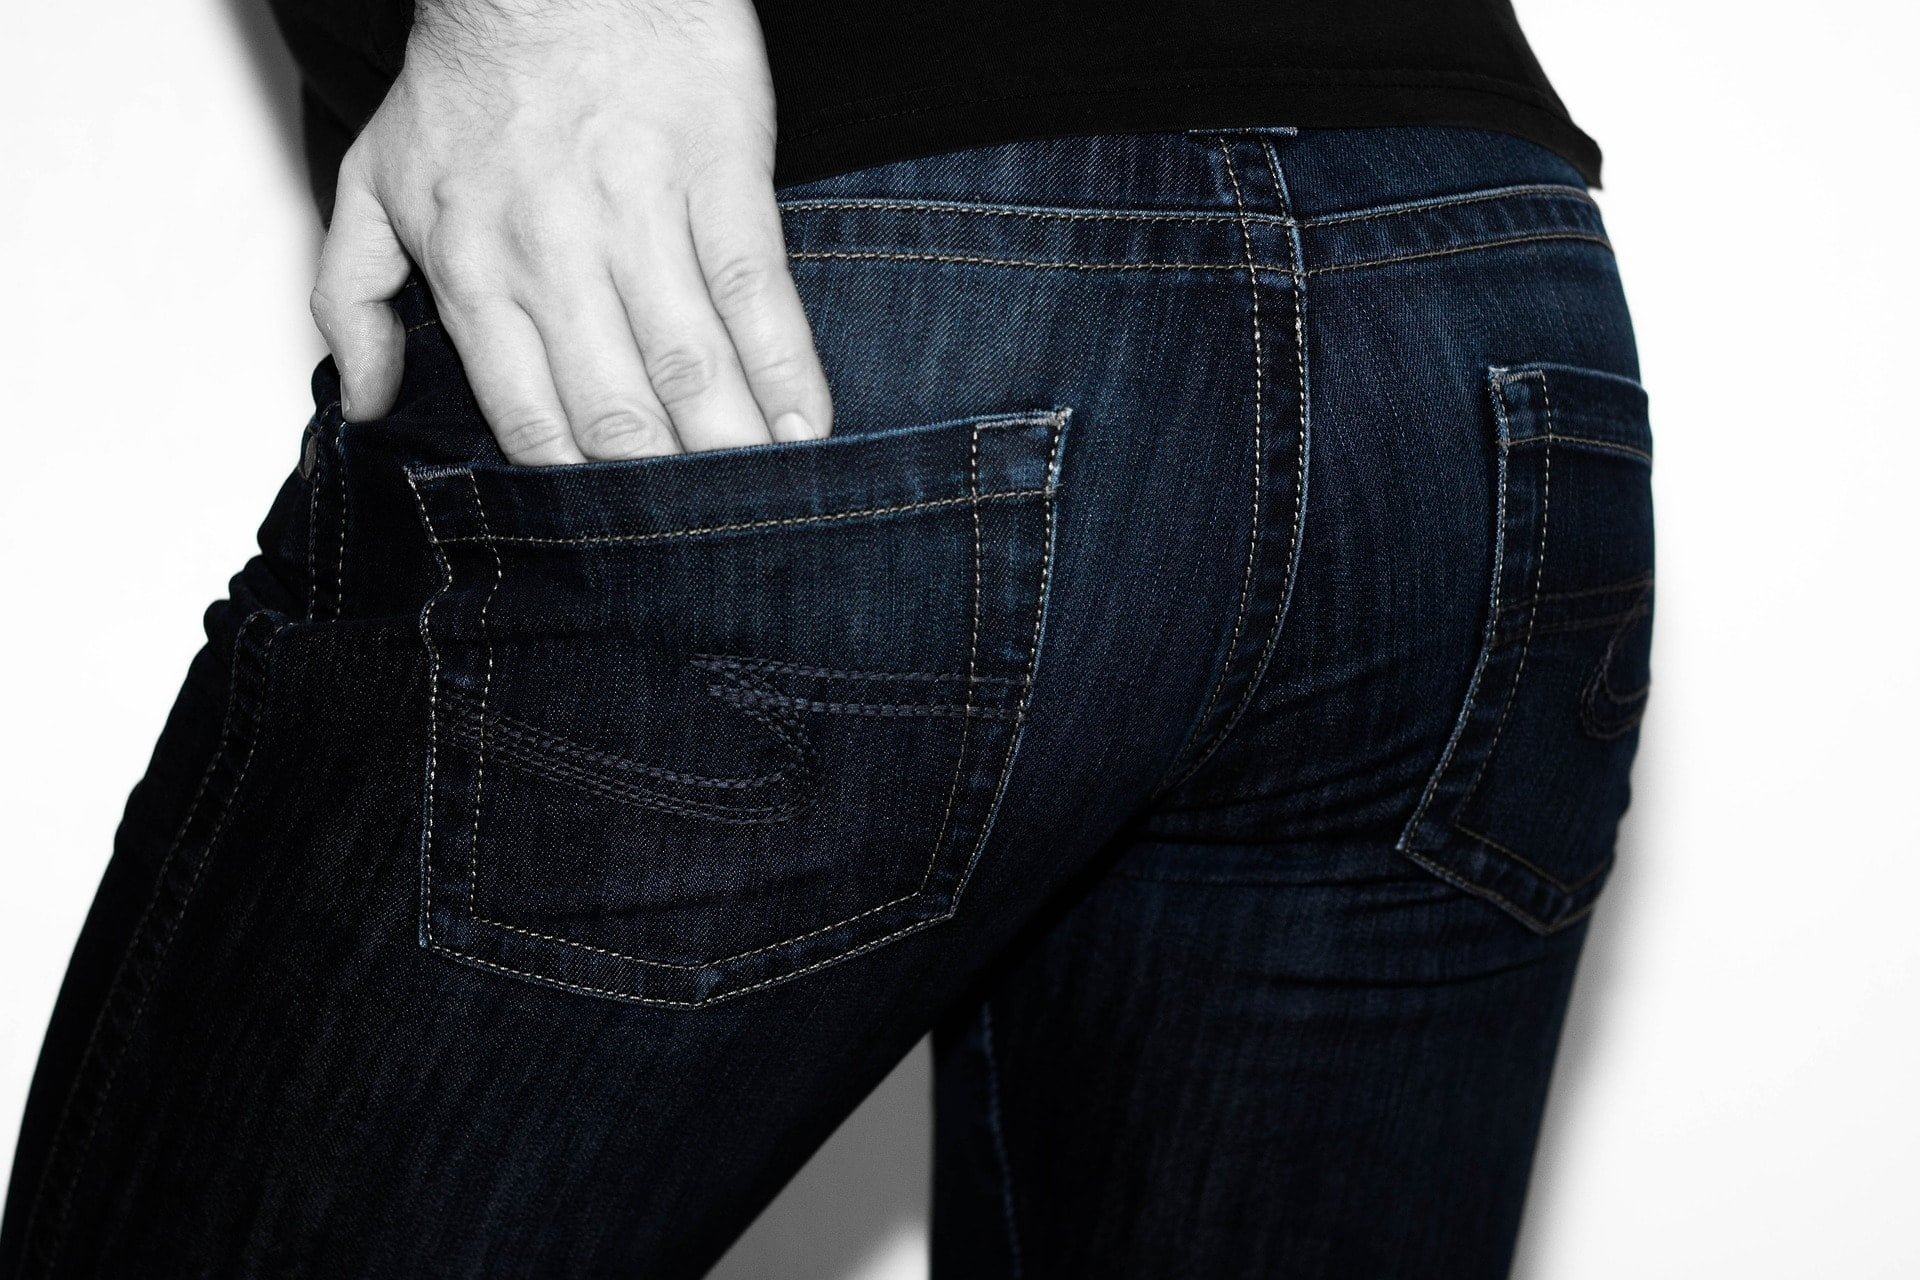 Wearing tight jeans may cause long term skin problems